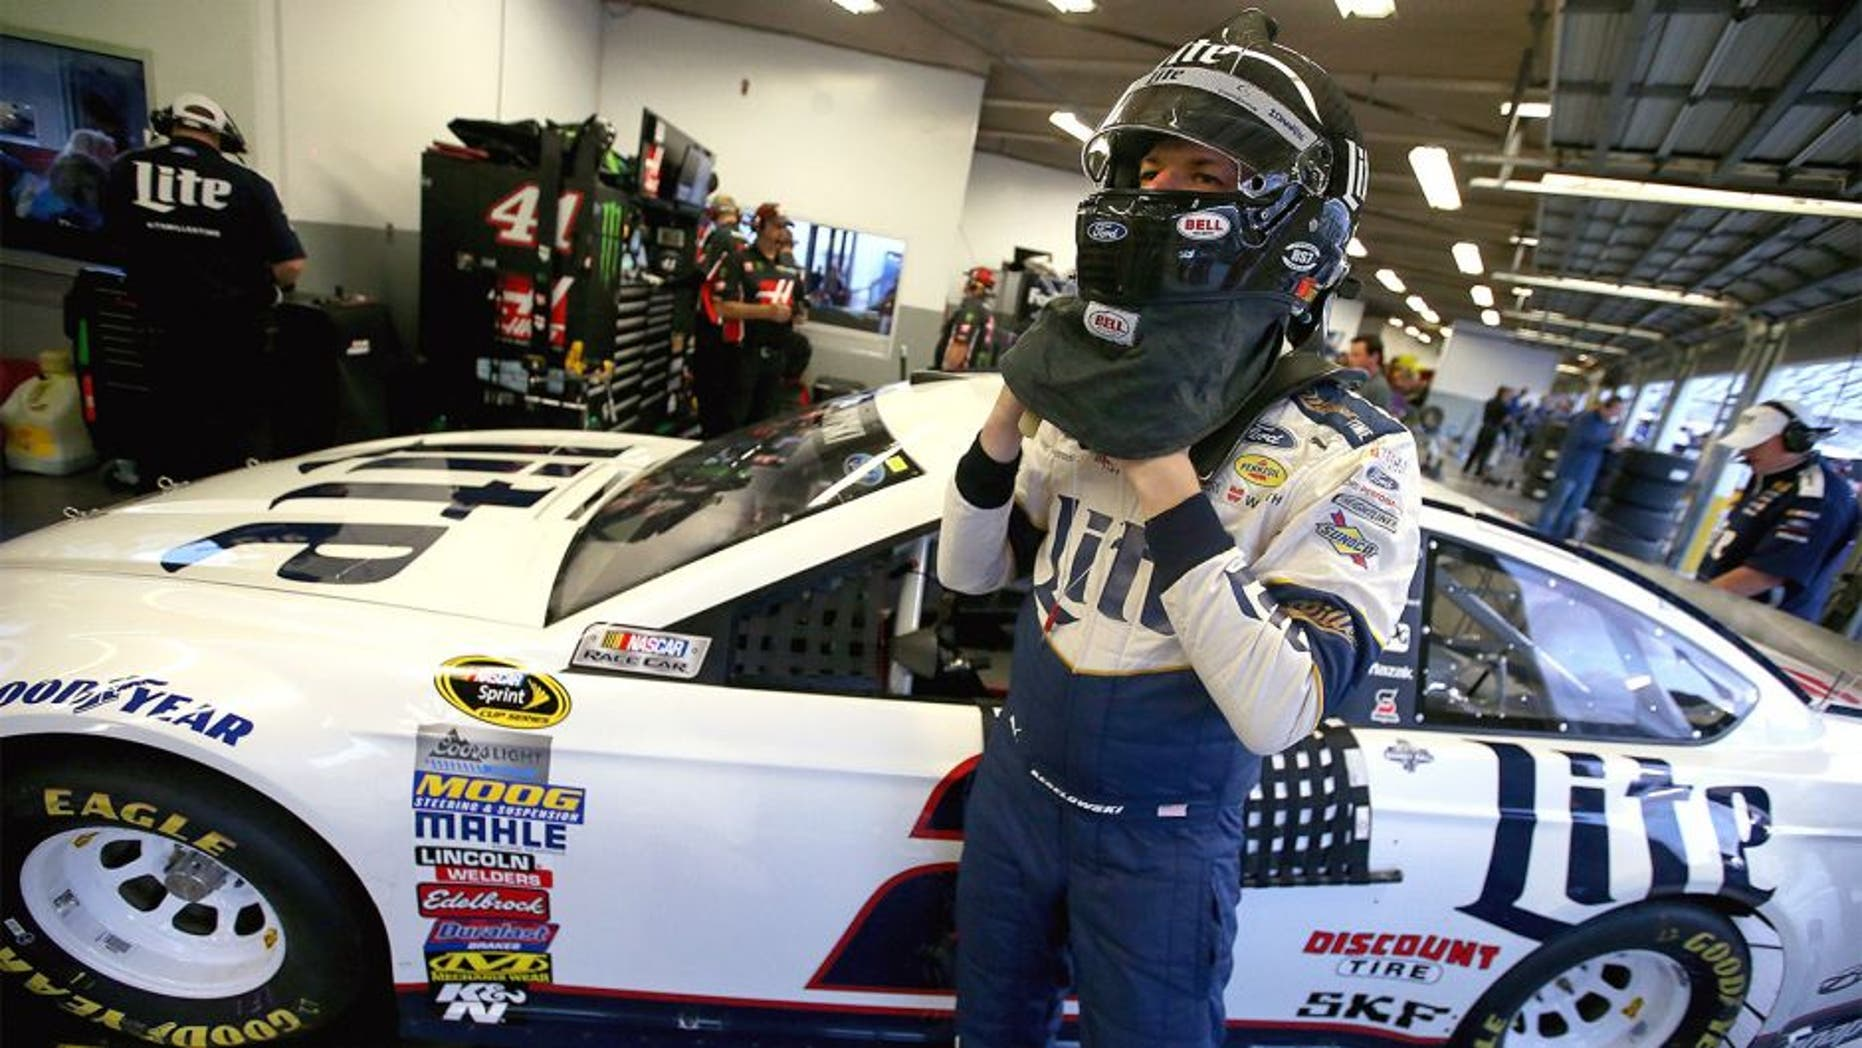 DAYTONA BEACH, FL - FEBRUARY 17: Brad Keselowski, driver of the #2 Miller Lite Ford, stands in the garage area during practice for the Daytona 500 at Daytona International Speedway on February 17, 2016 in Daytona Beach, Florida. (Photo by Sean Gardner/Getty Images)